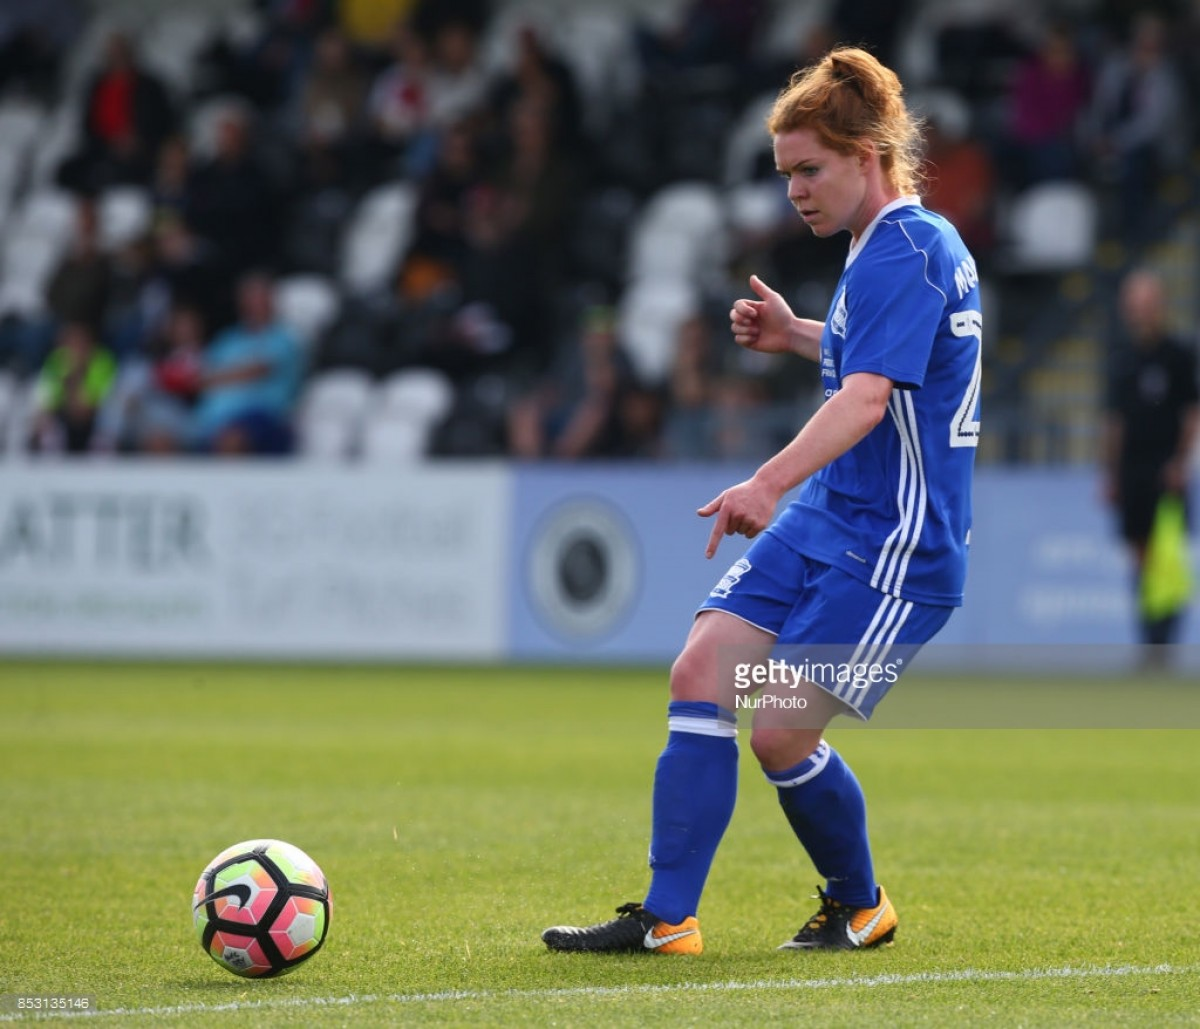 Aoife Mannion reflects on last-minute loss in London